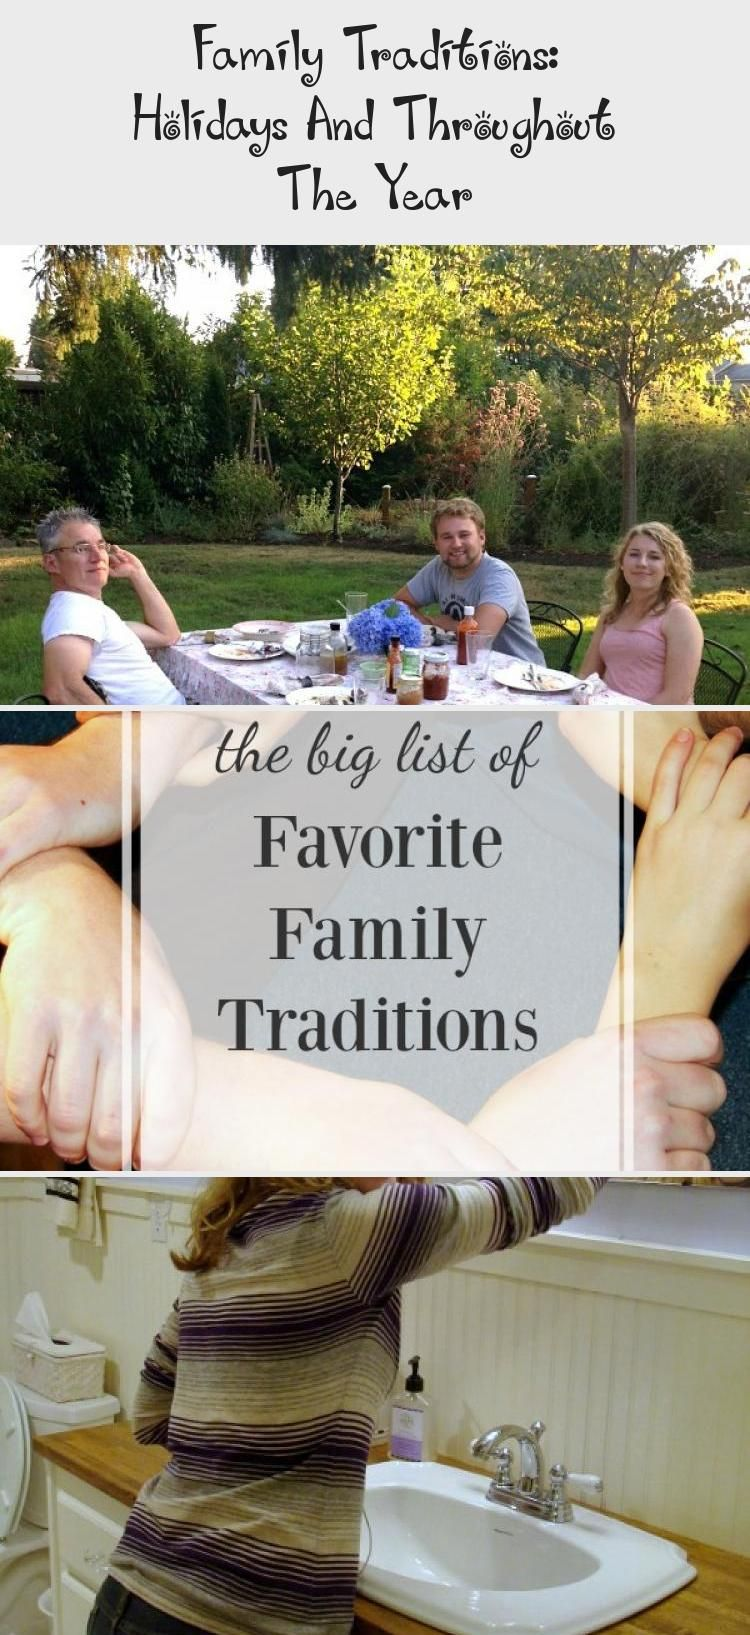 Family Traditions: Holidays And Throughout The Year - KIDS in 2020 | Family traditions, Kids ...